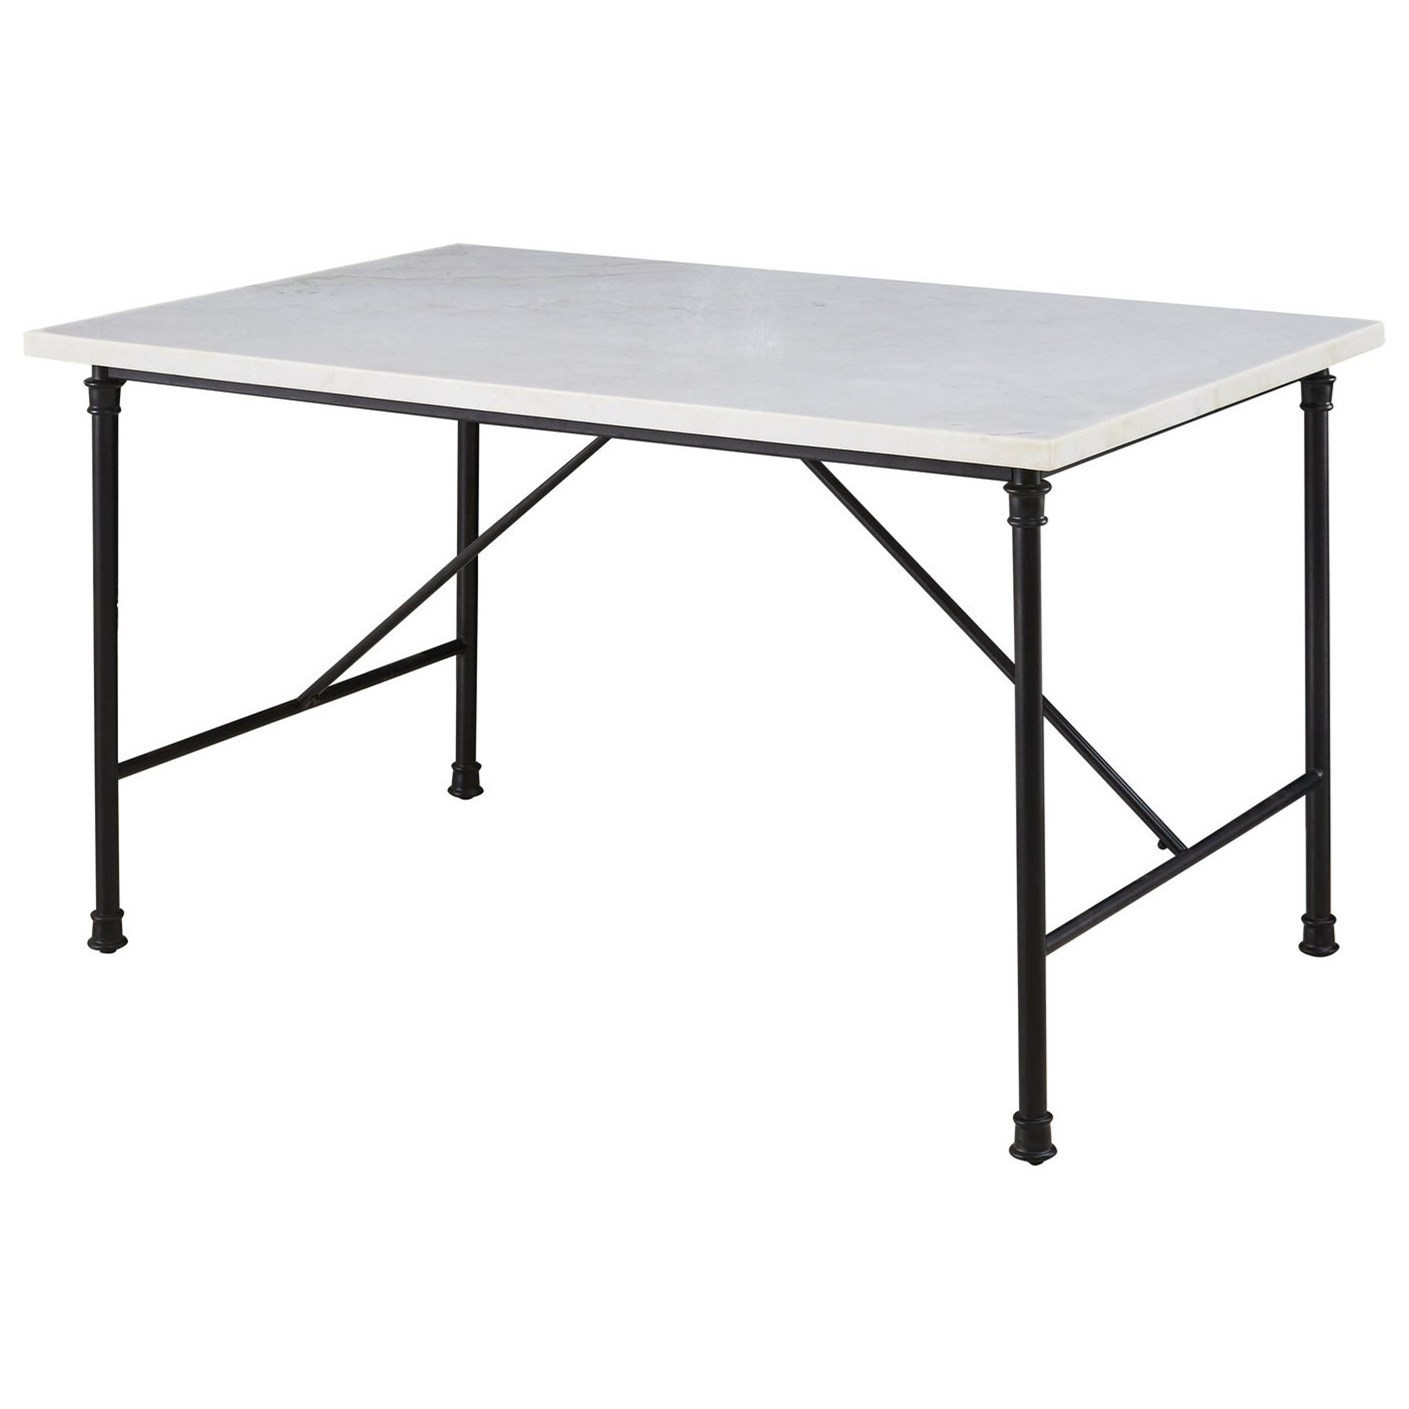 Contemporary Dining Table with White Marble Top